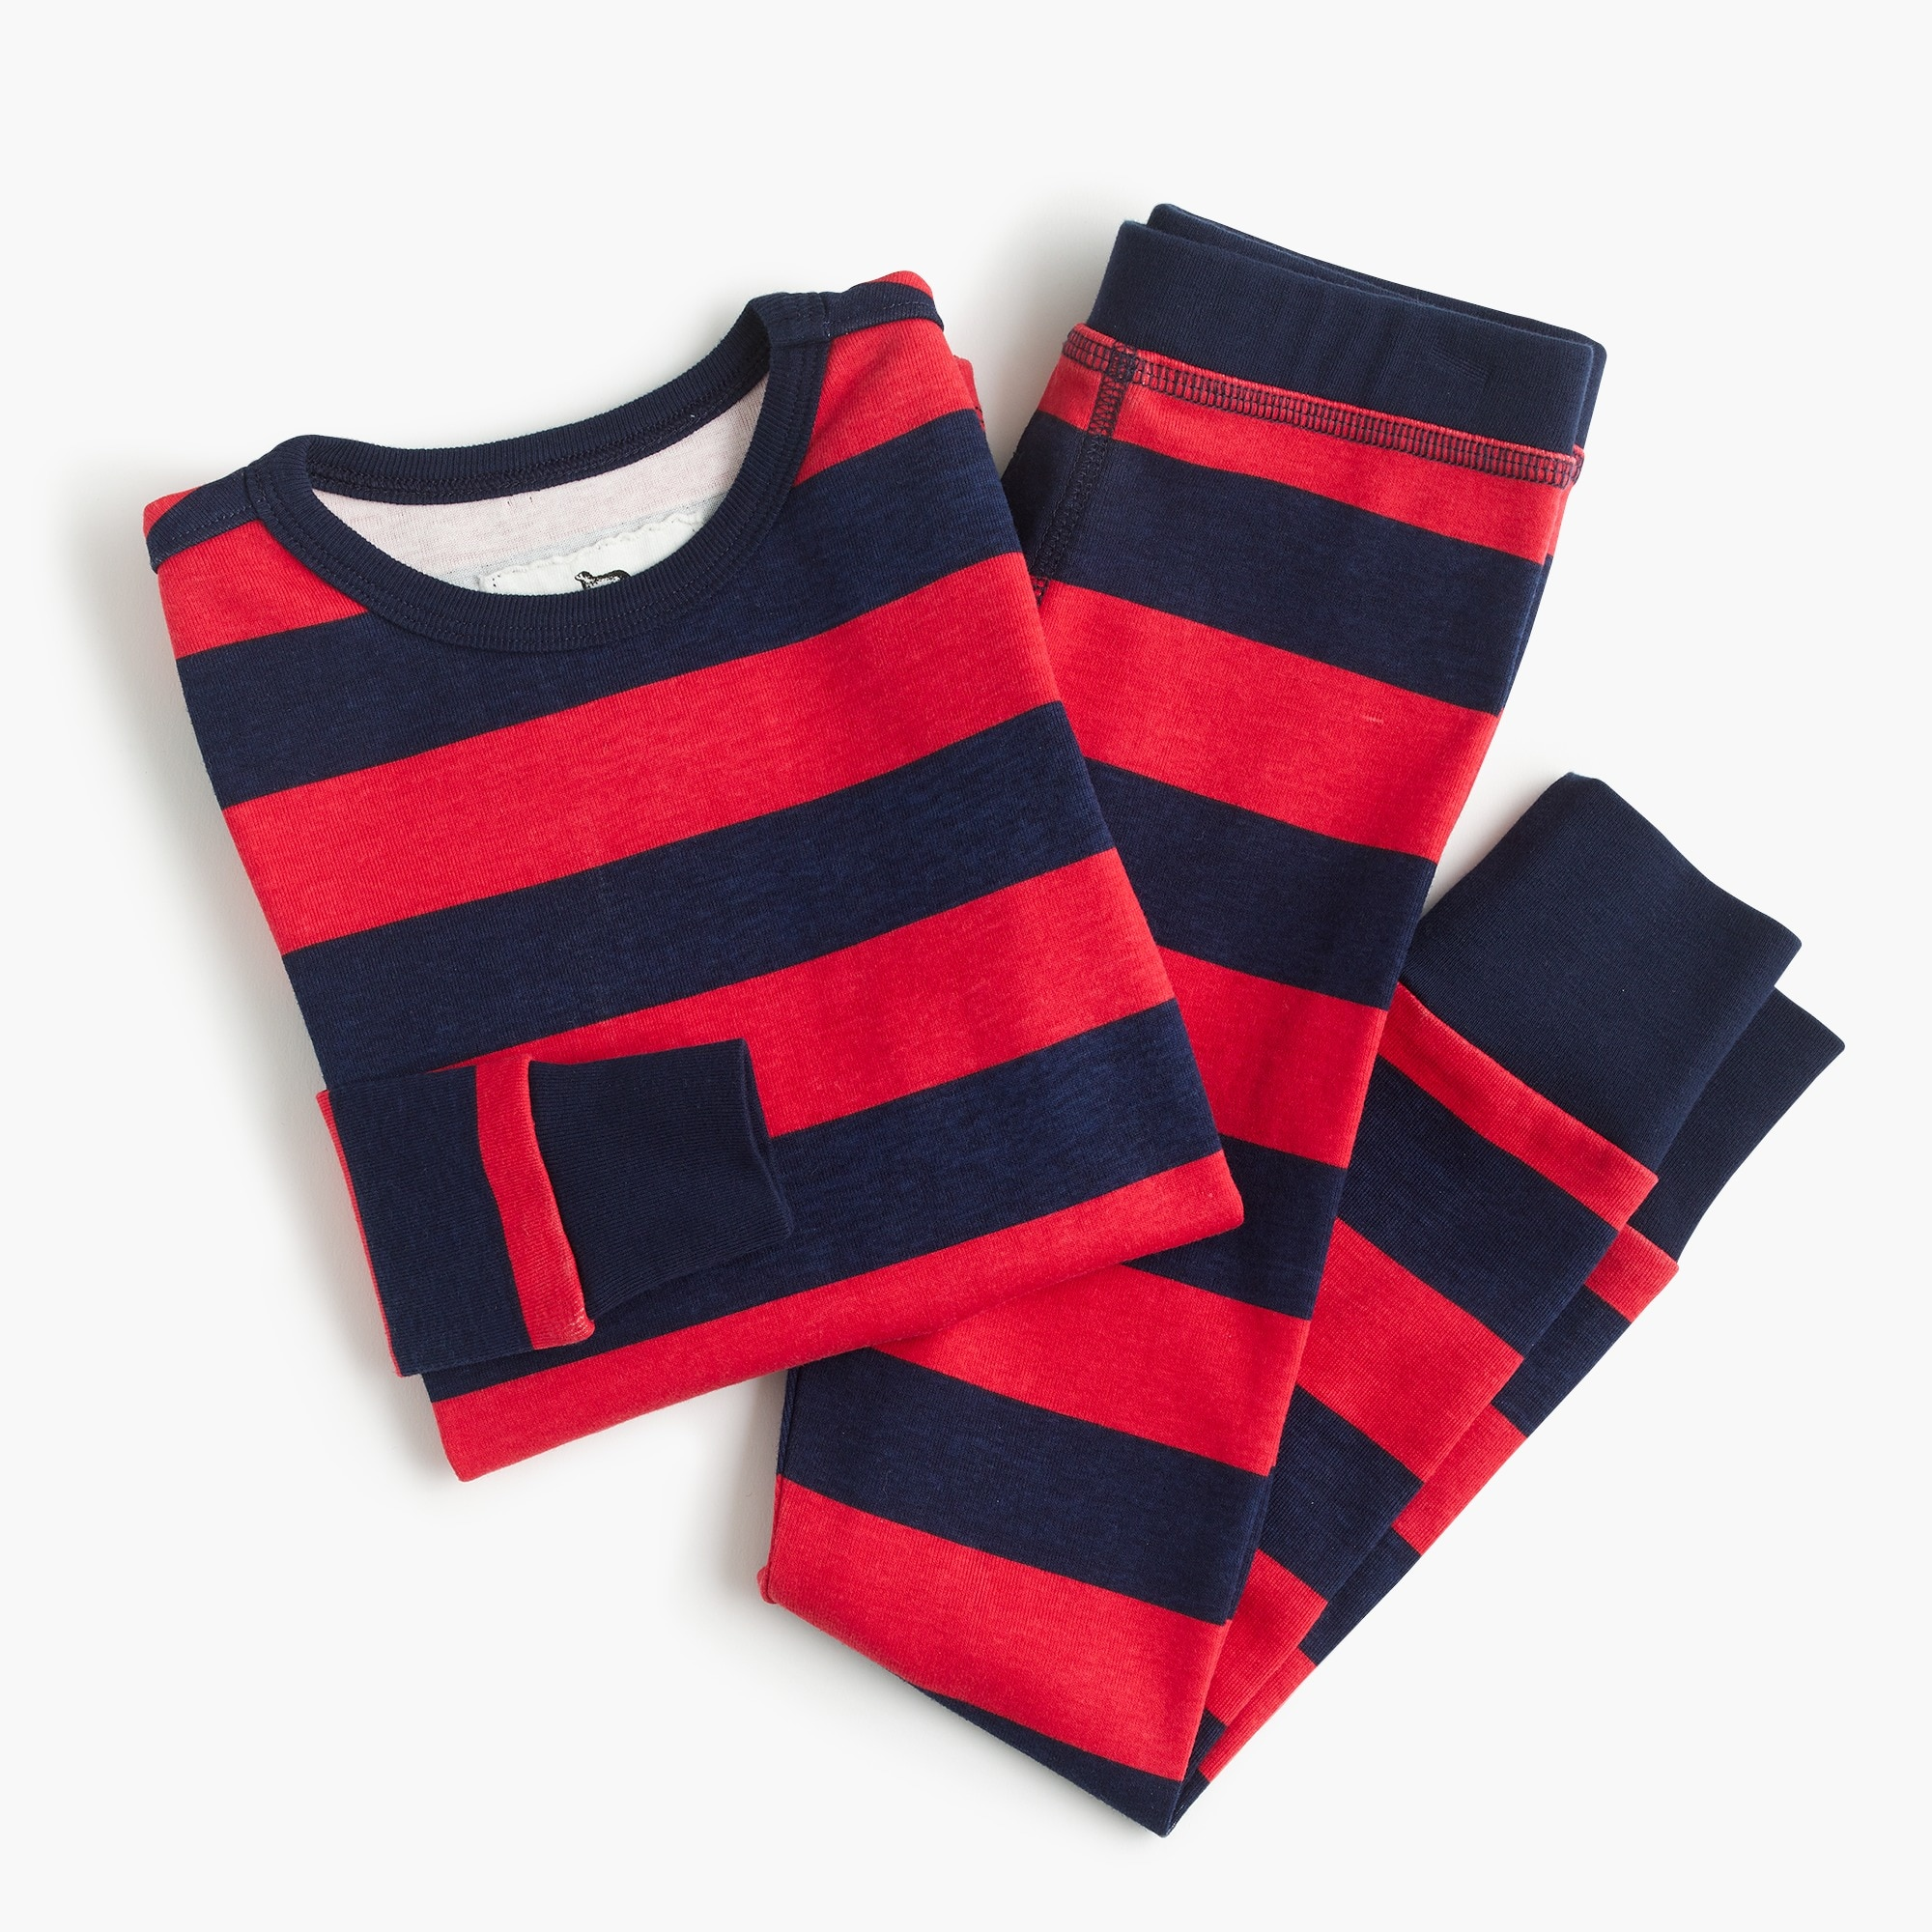 Image 1 for Kids' pajama set in red stripes